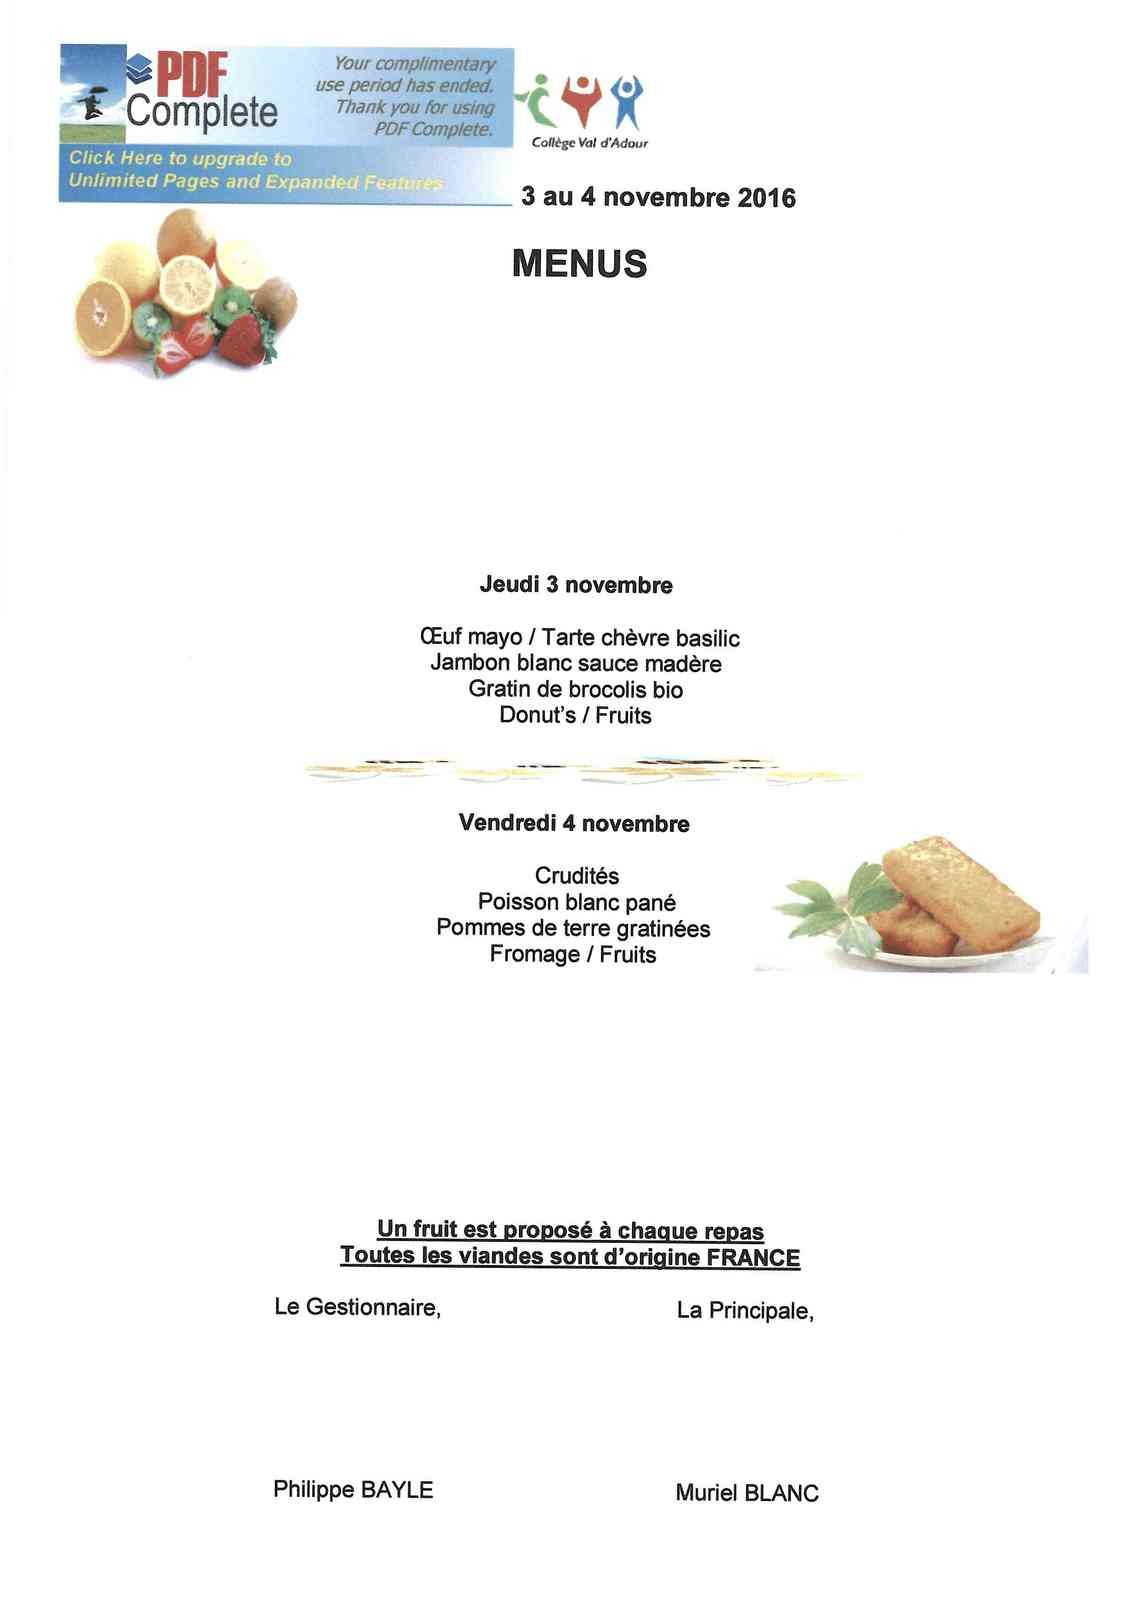 Menu restauration scolaire du 03.11.16 au 04.11.16